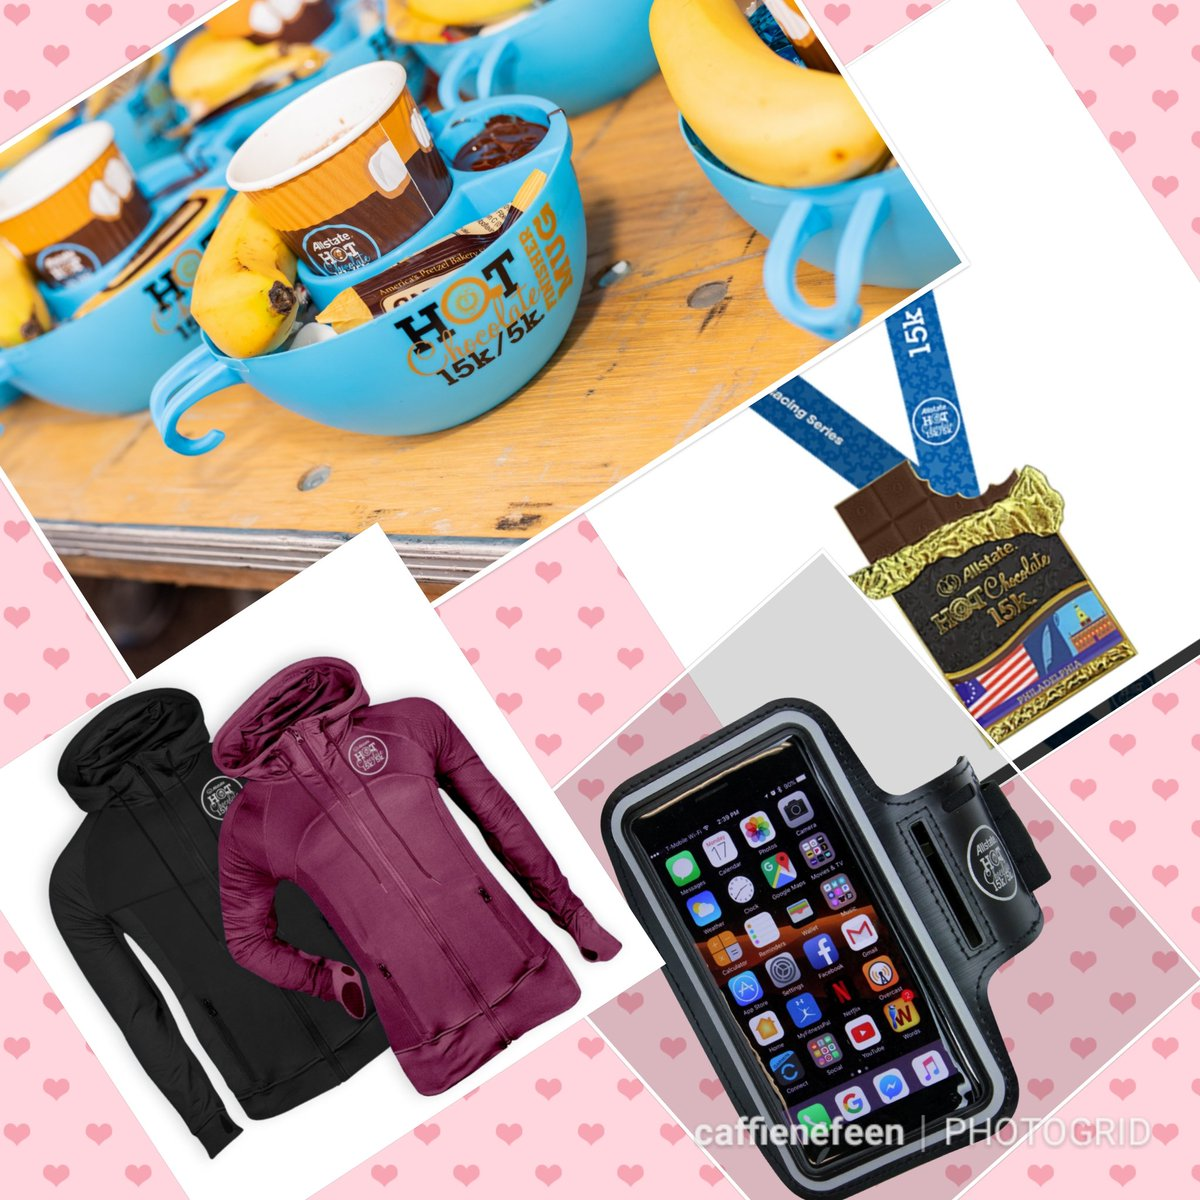 Happy Valentine's day! 💝☕🍫🏃♂️😀 Give the gift of chocolate, plus running of course! 😍😉 Dont forget to treat yo self! 4/6 - #HC15k Philly!  code BRHCPhilly for a free smart phone arm band!  #HCPhillyBR #BibChat  #BibRavePro #ad #sponsored